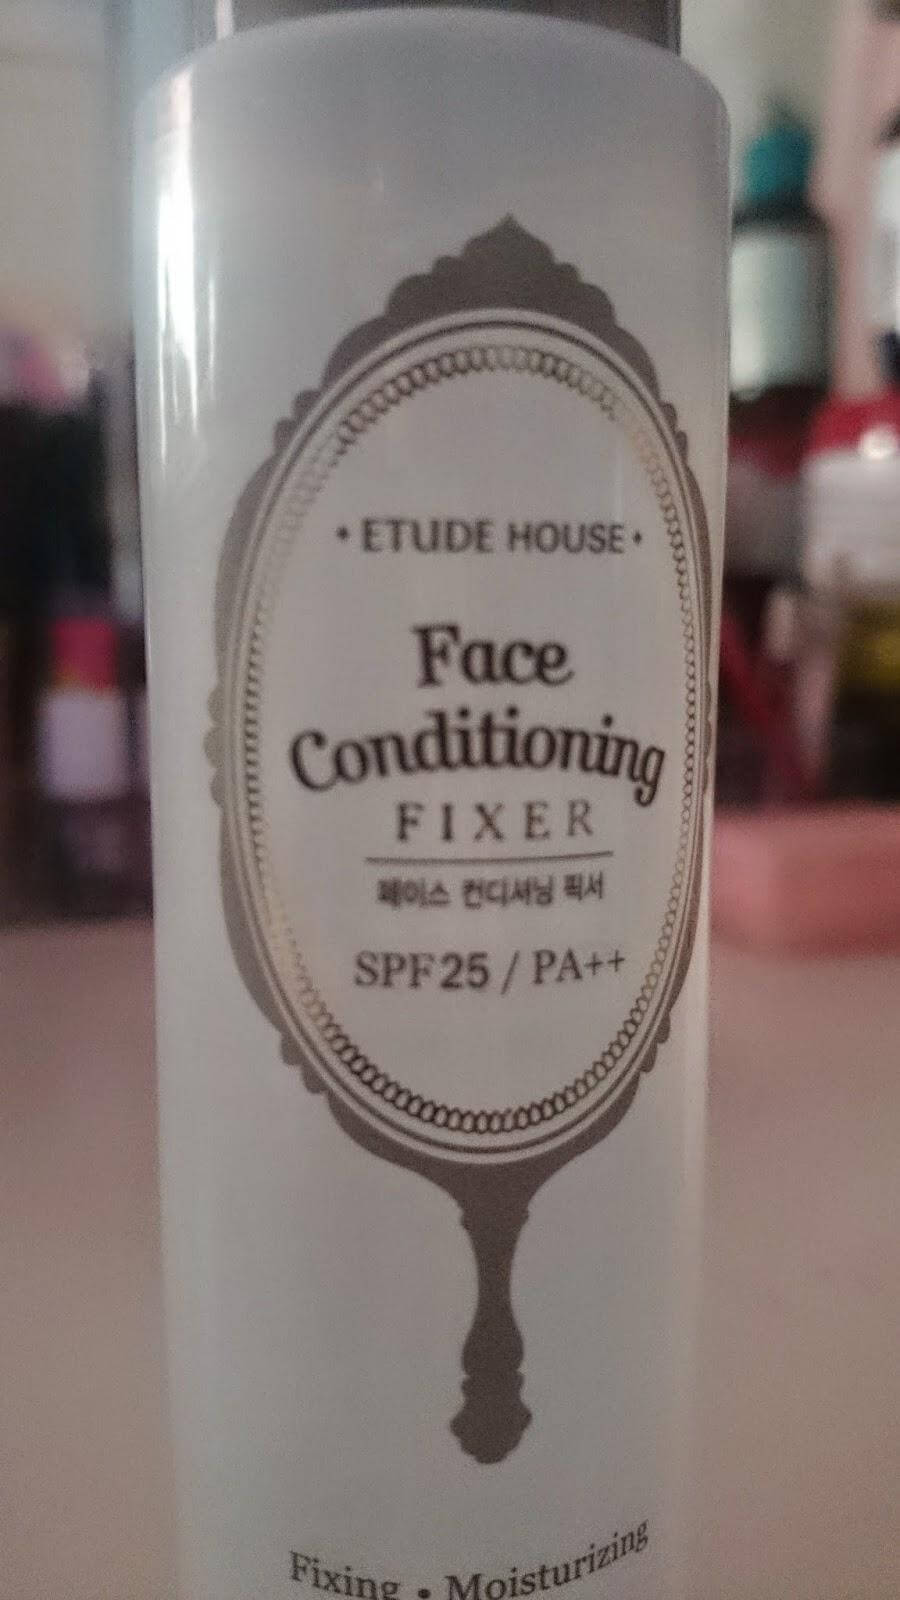 Xịt khoáng dưỡng ETUDE HOUSE FACE Face Conditioning Fixer